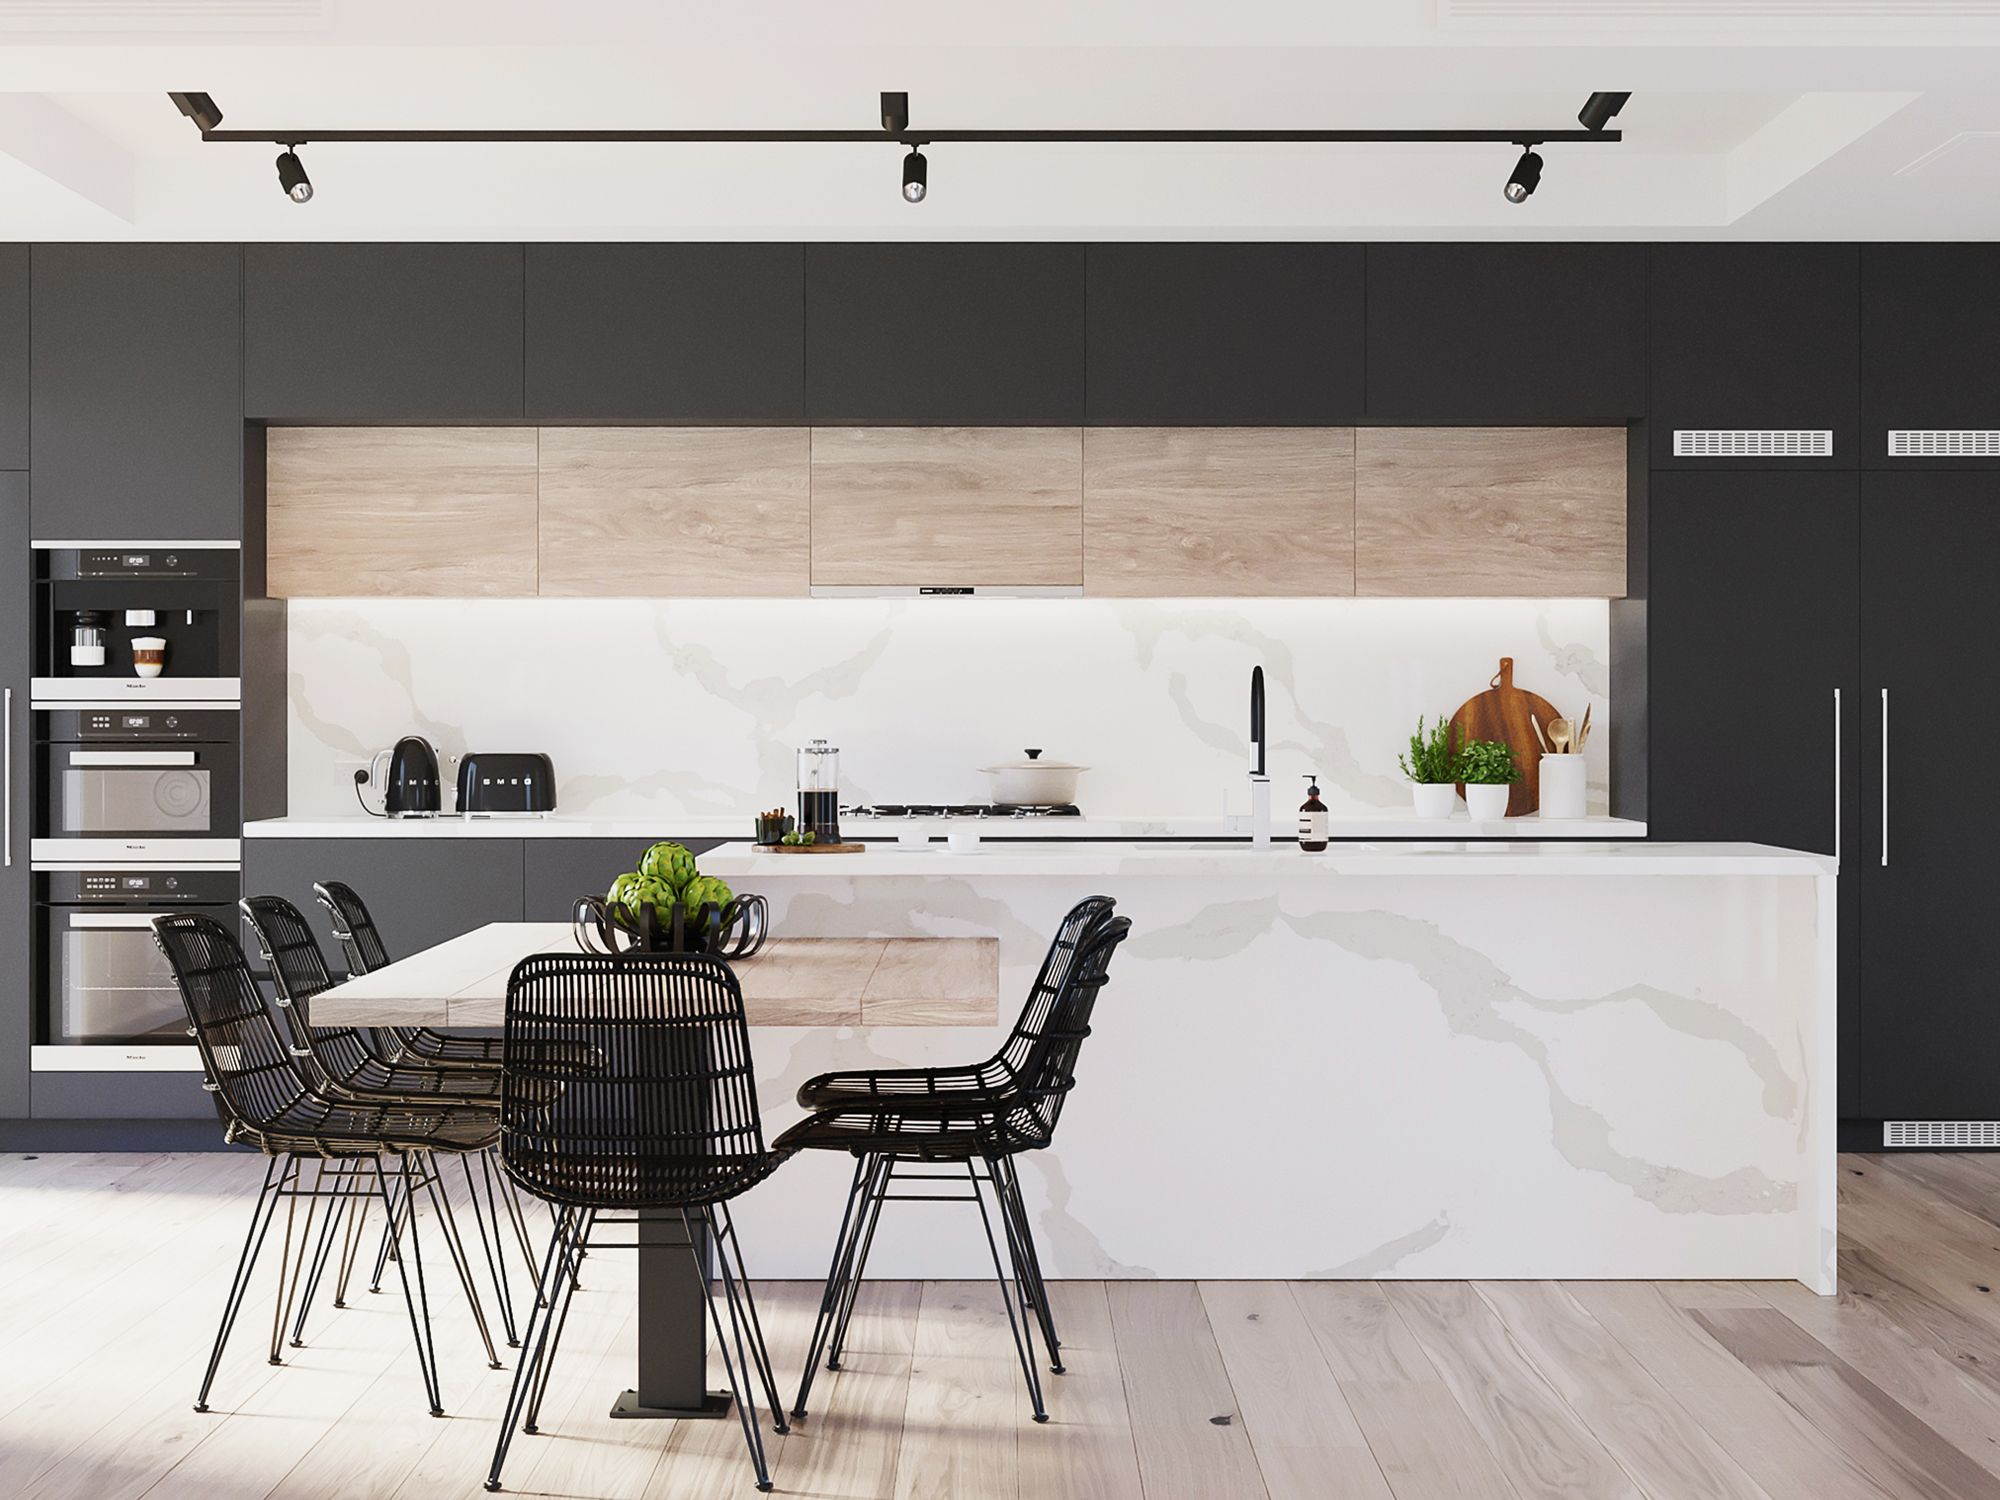 Kitchen island clad in the Calacatta Maximus surface, from Caesarstone